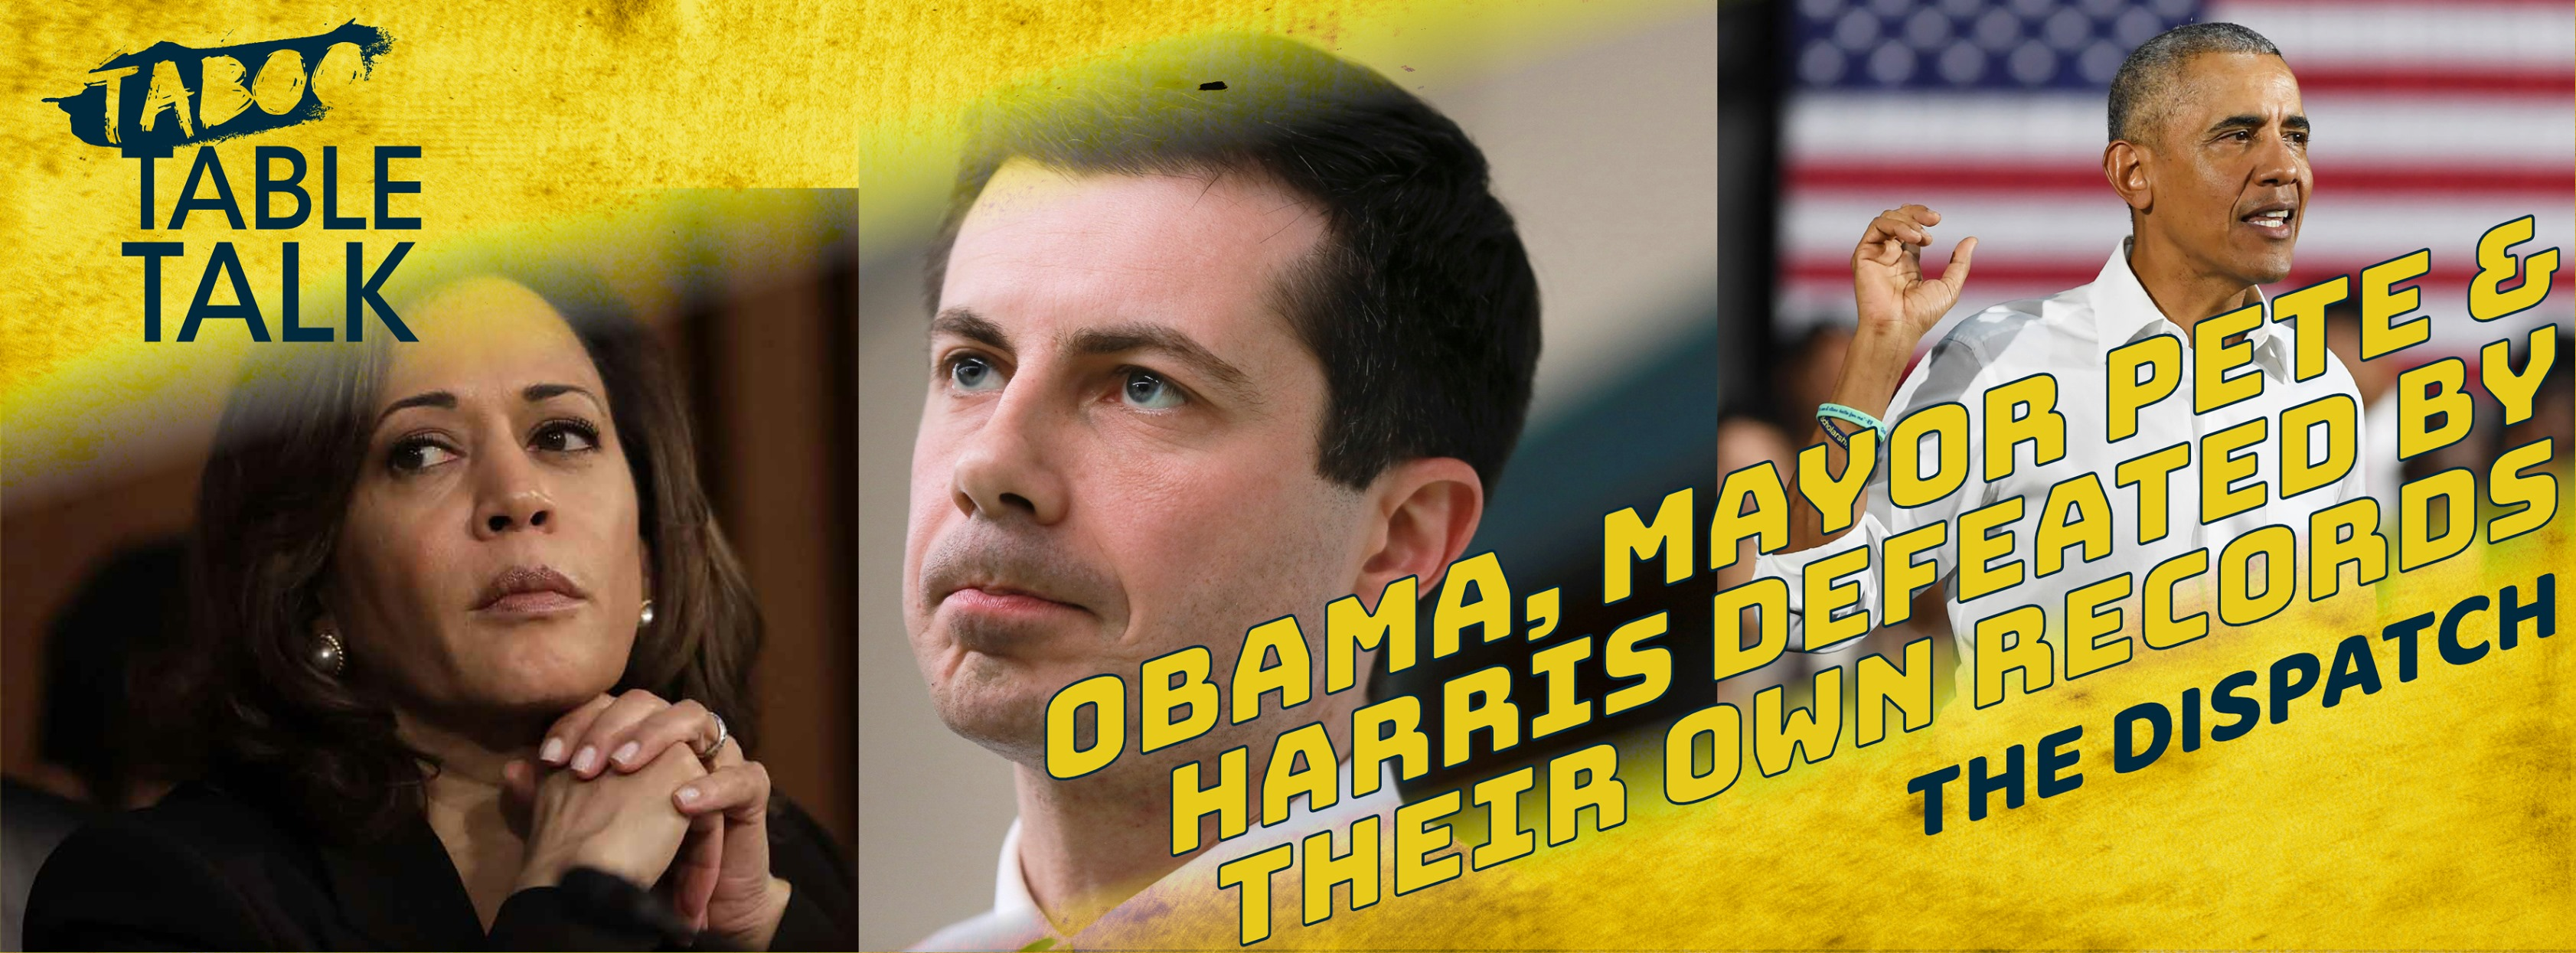 Mayor Pete's Record Proves He Is Out Of Touch! [The Dispatch]